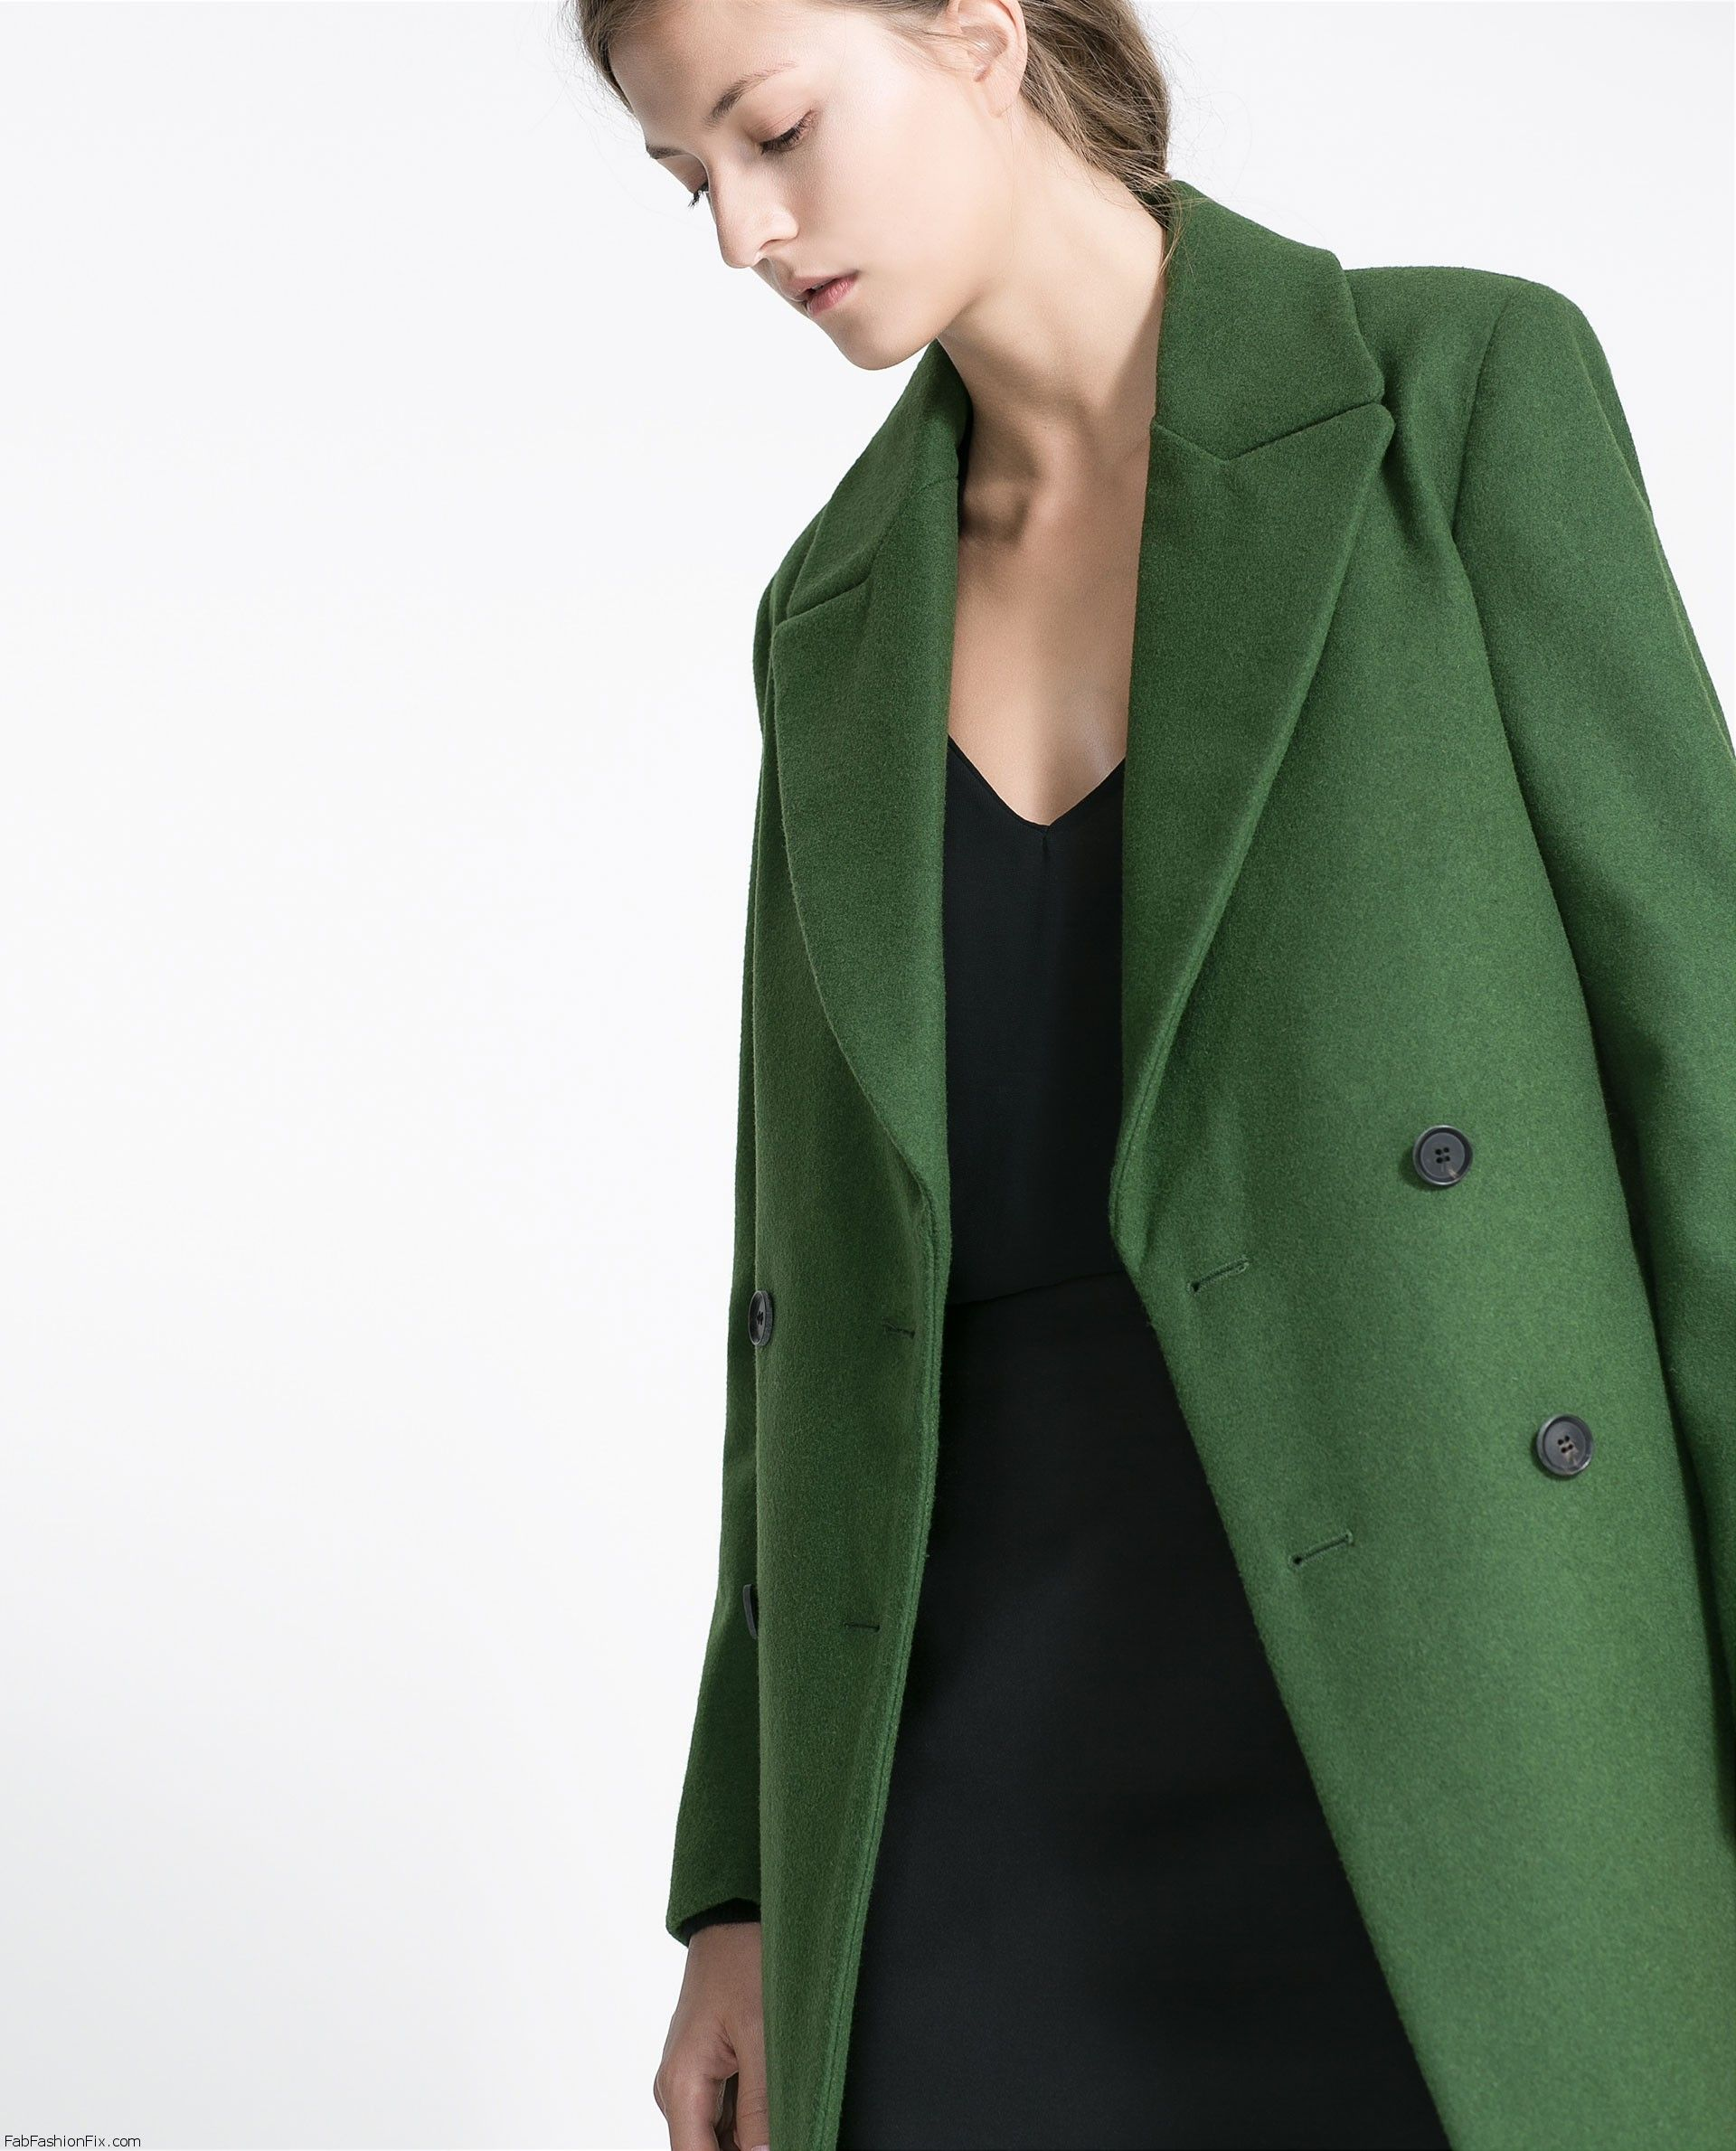 ZARA coats & jackets for fall/winter 2013 | Fab Fashion Fix